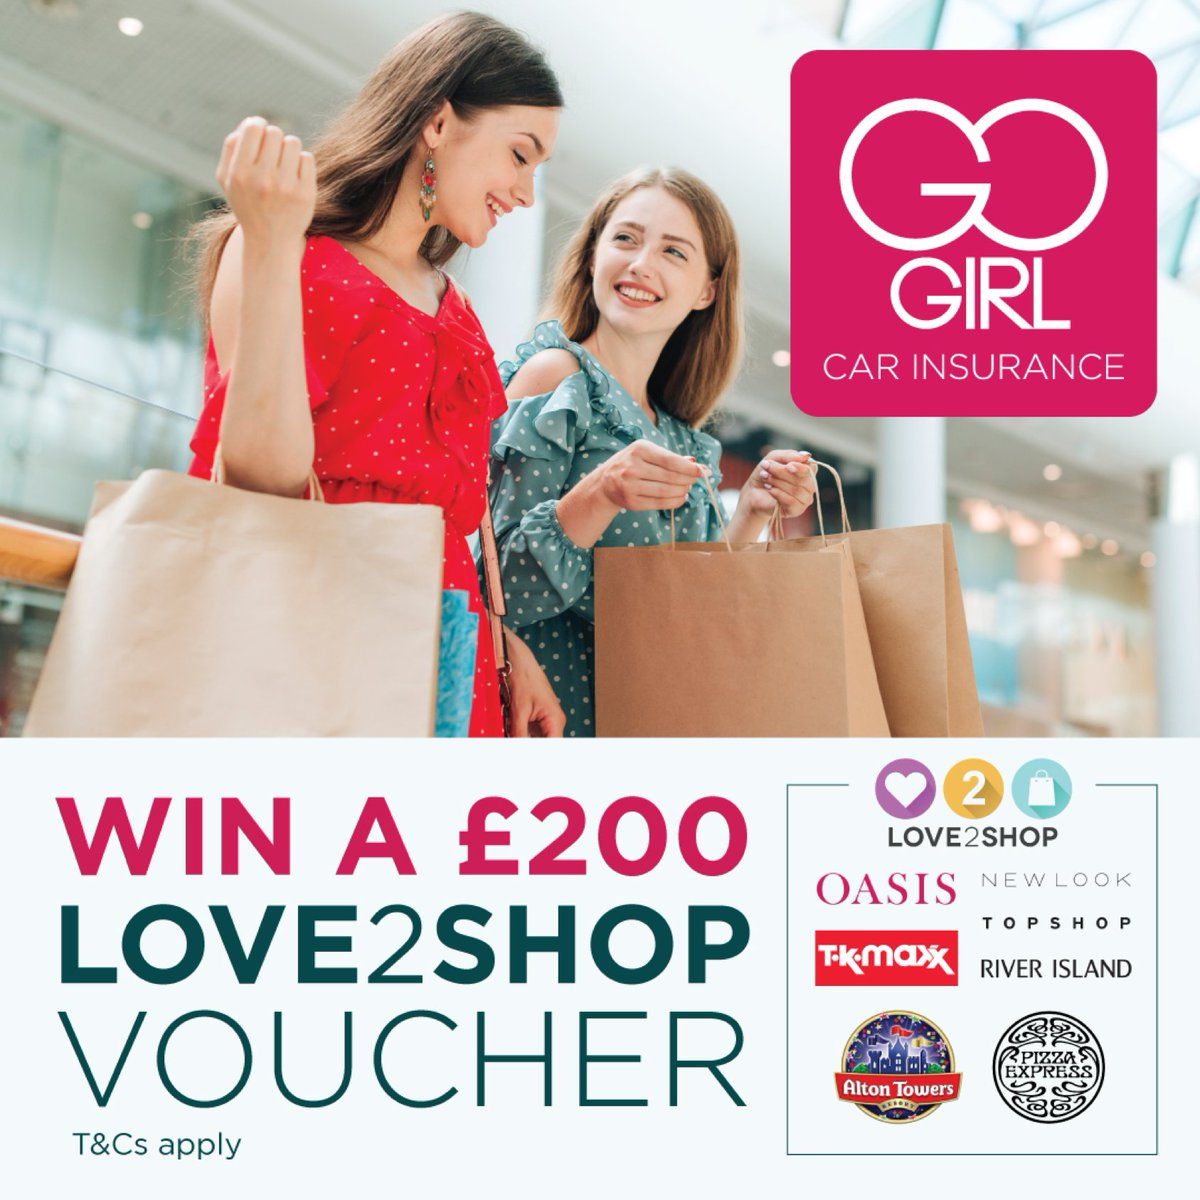 COMPETITION TIME !!!!!!!! Enter our competition for your chance to win a fantastic £200 Love2Shop voucher gogirl.co.uk/news-and-advic… Terms & conditions apply. #competitions #competition #thursdaythoughts #win @Love2shop_UK #love2shop @gogirlinsurance #gogirls